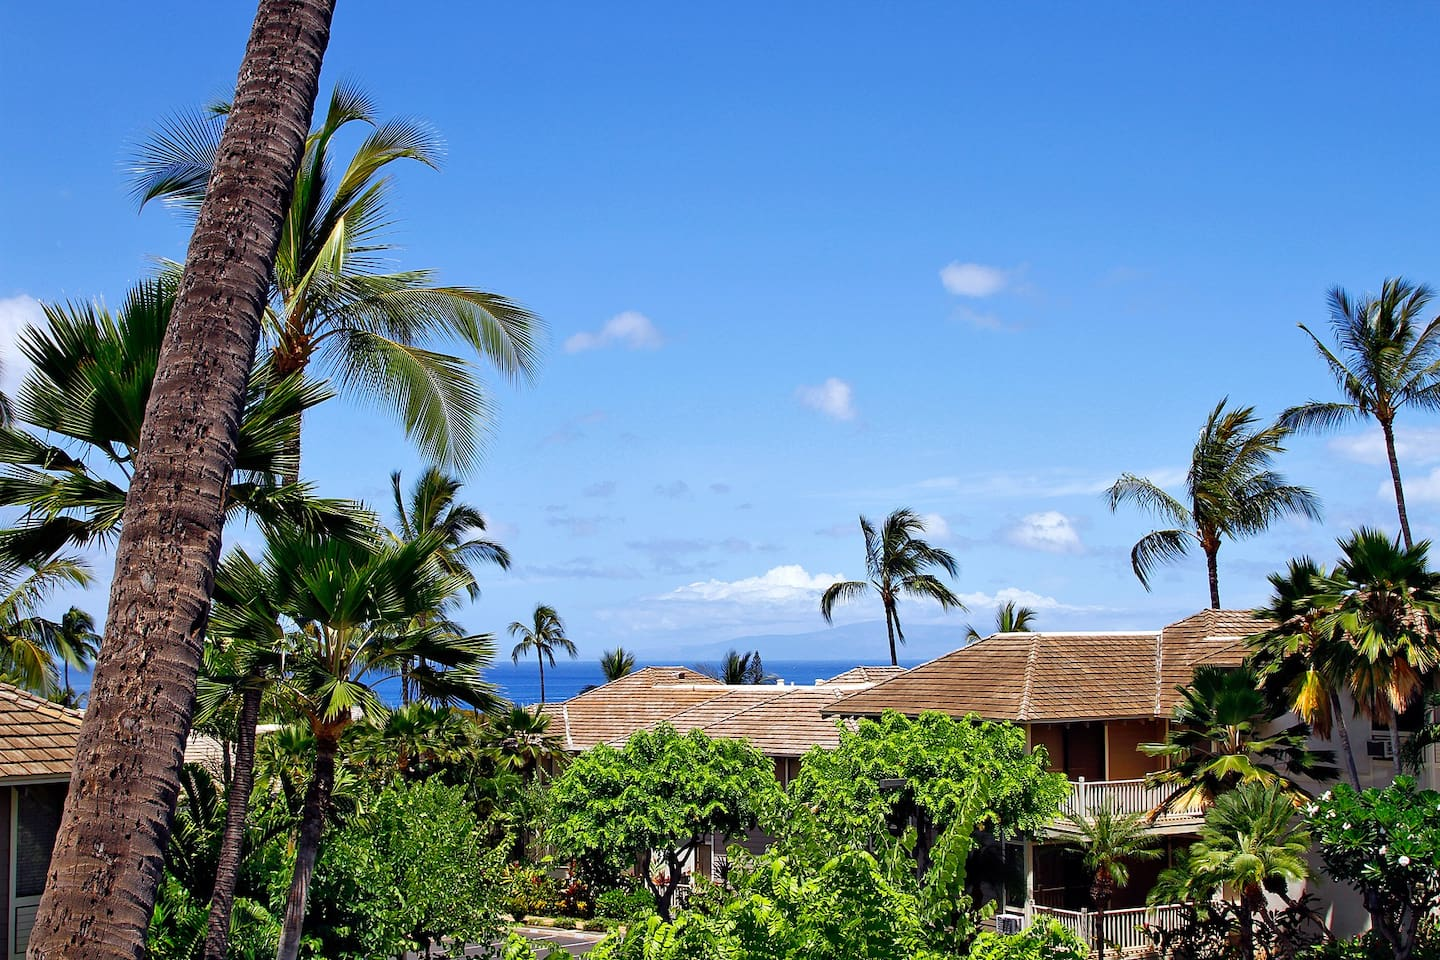 View from the balcony. Island of Lanai in the distance.